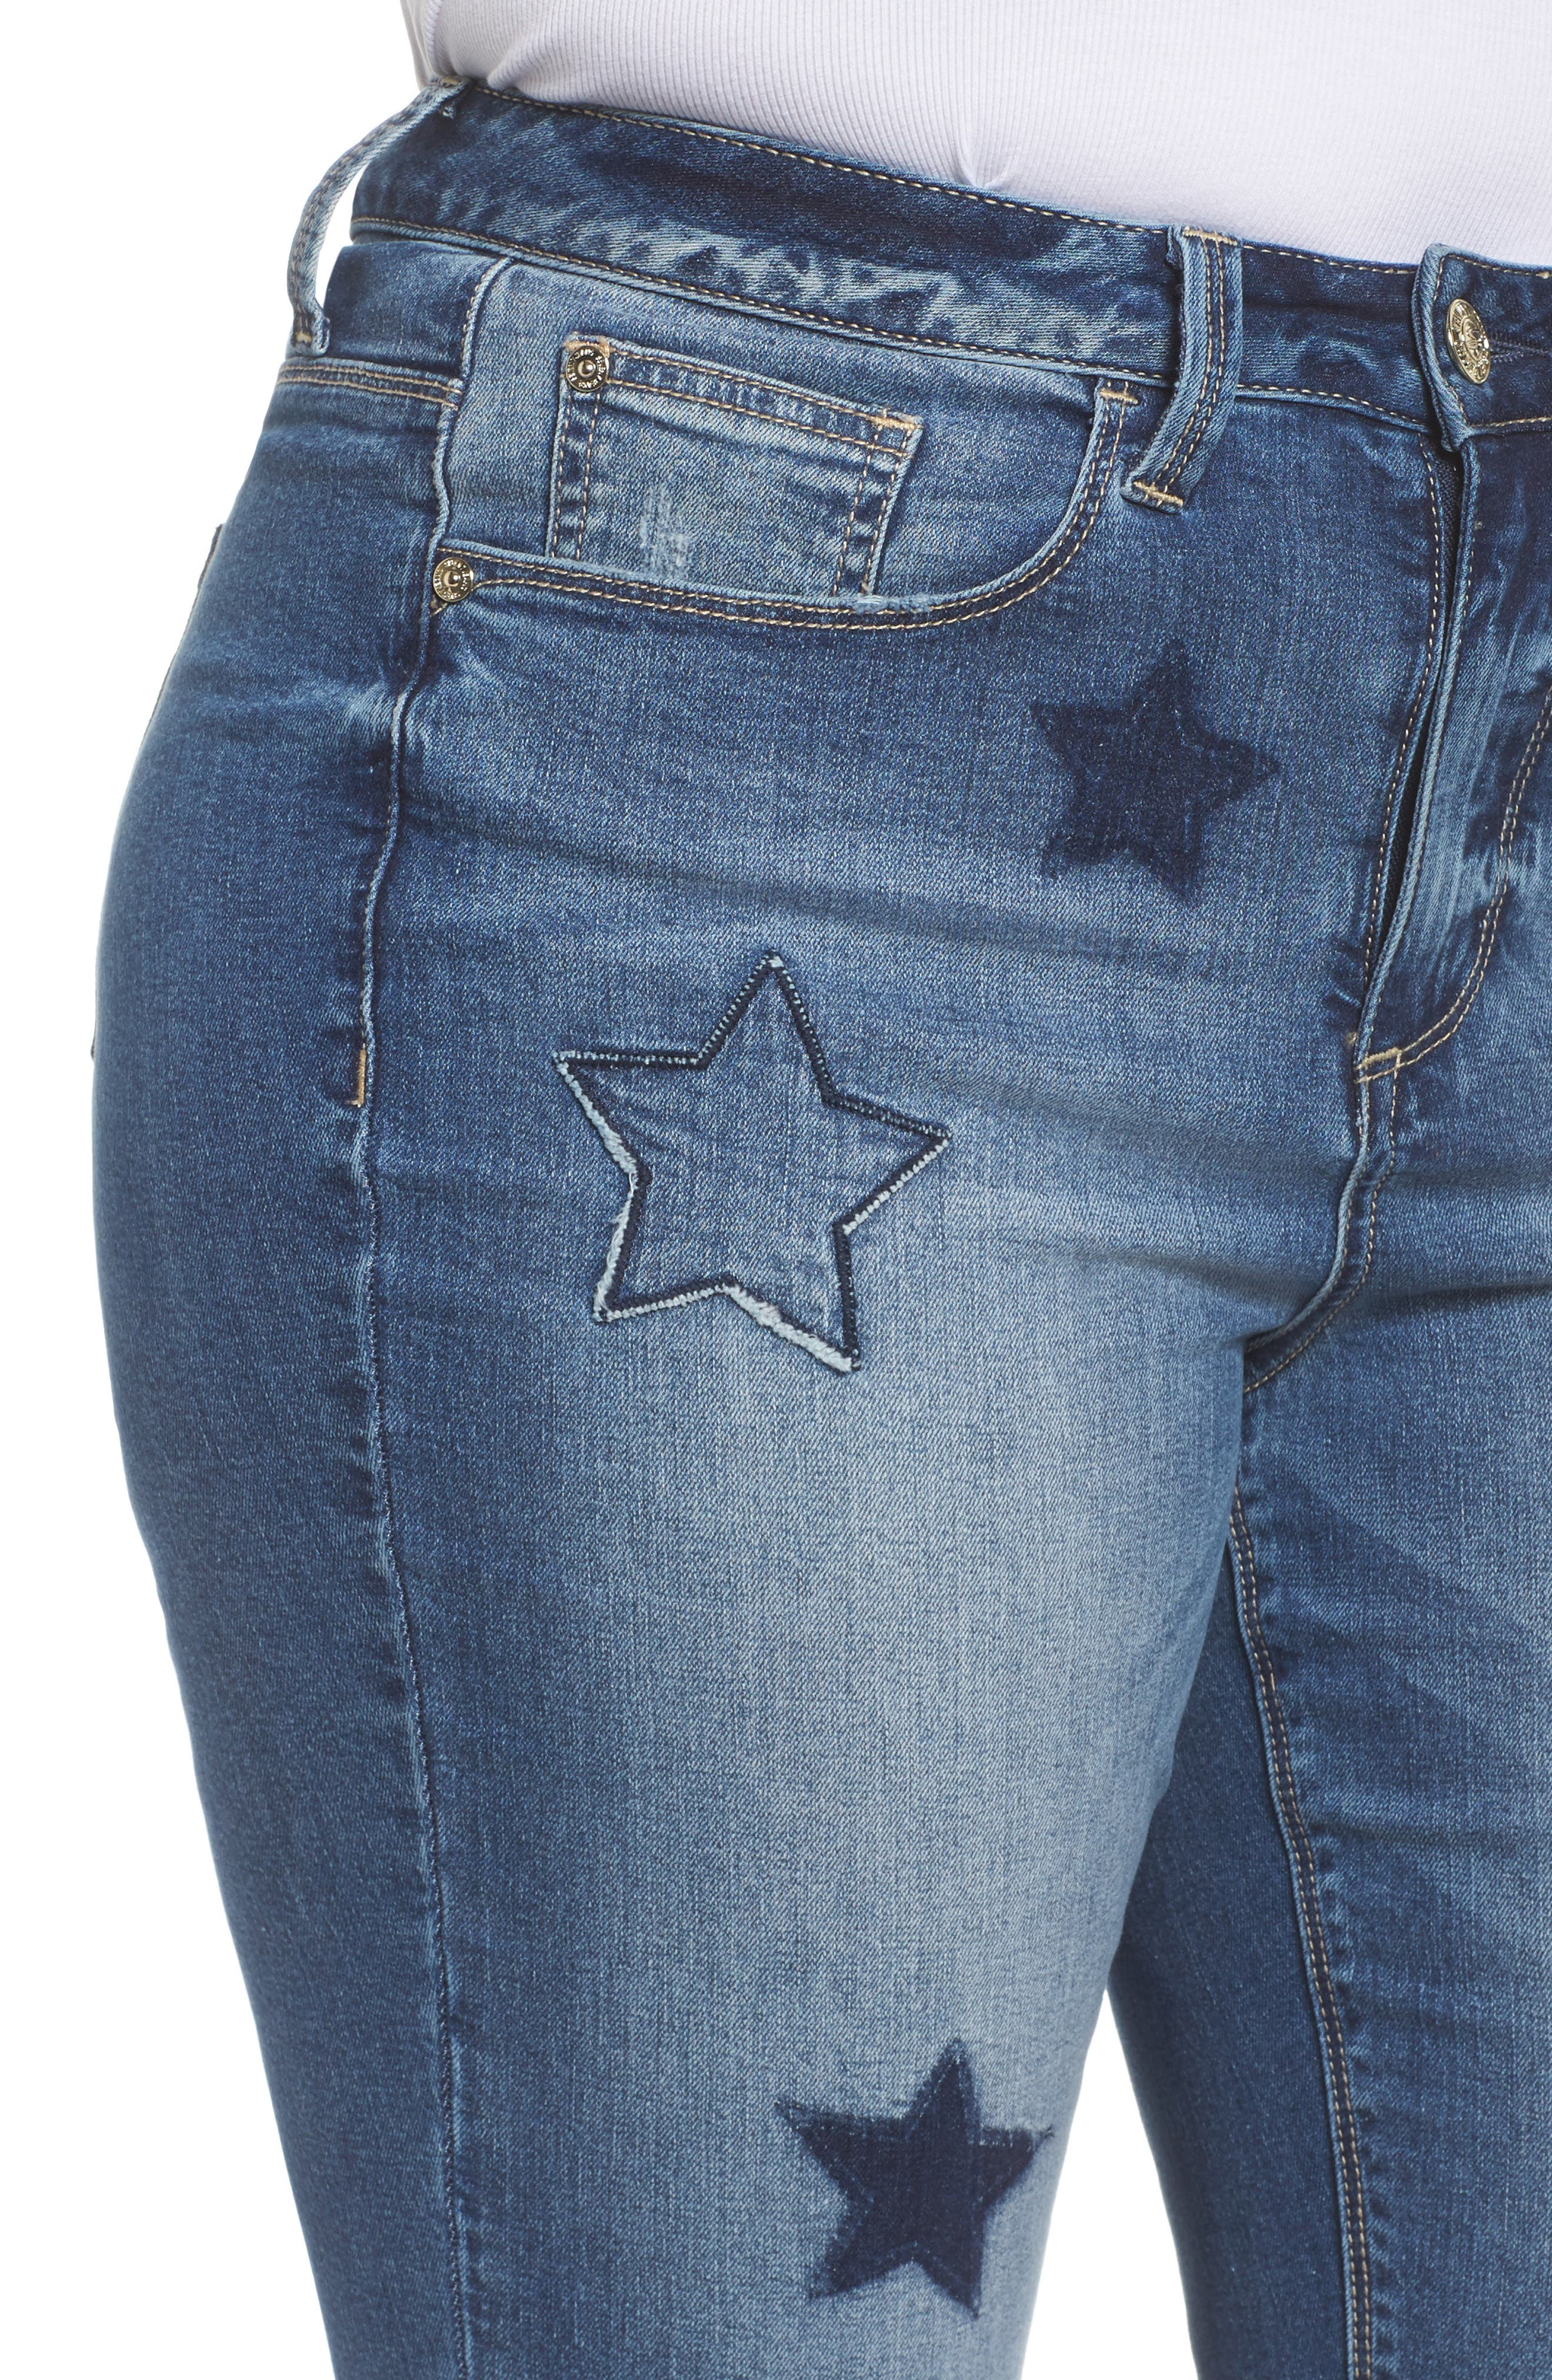 Star Patched Straight Leg Crop Jeans,                             Alternate thumbnail 4, color,                             Capri